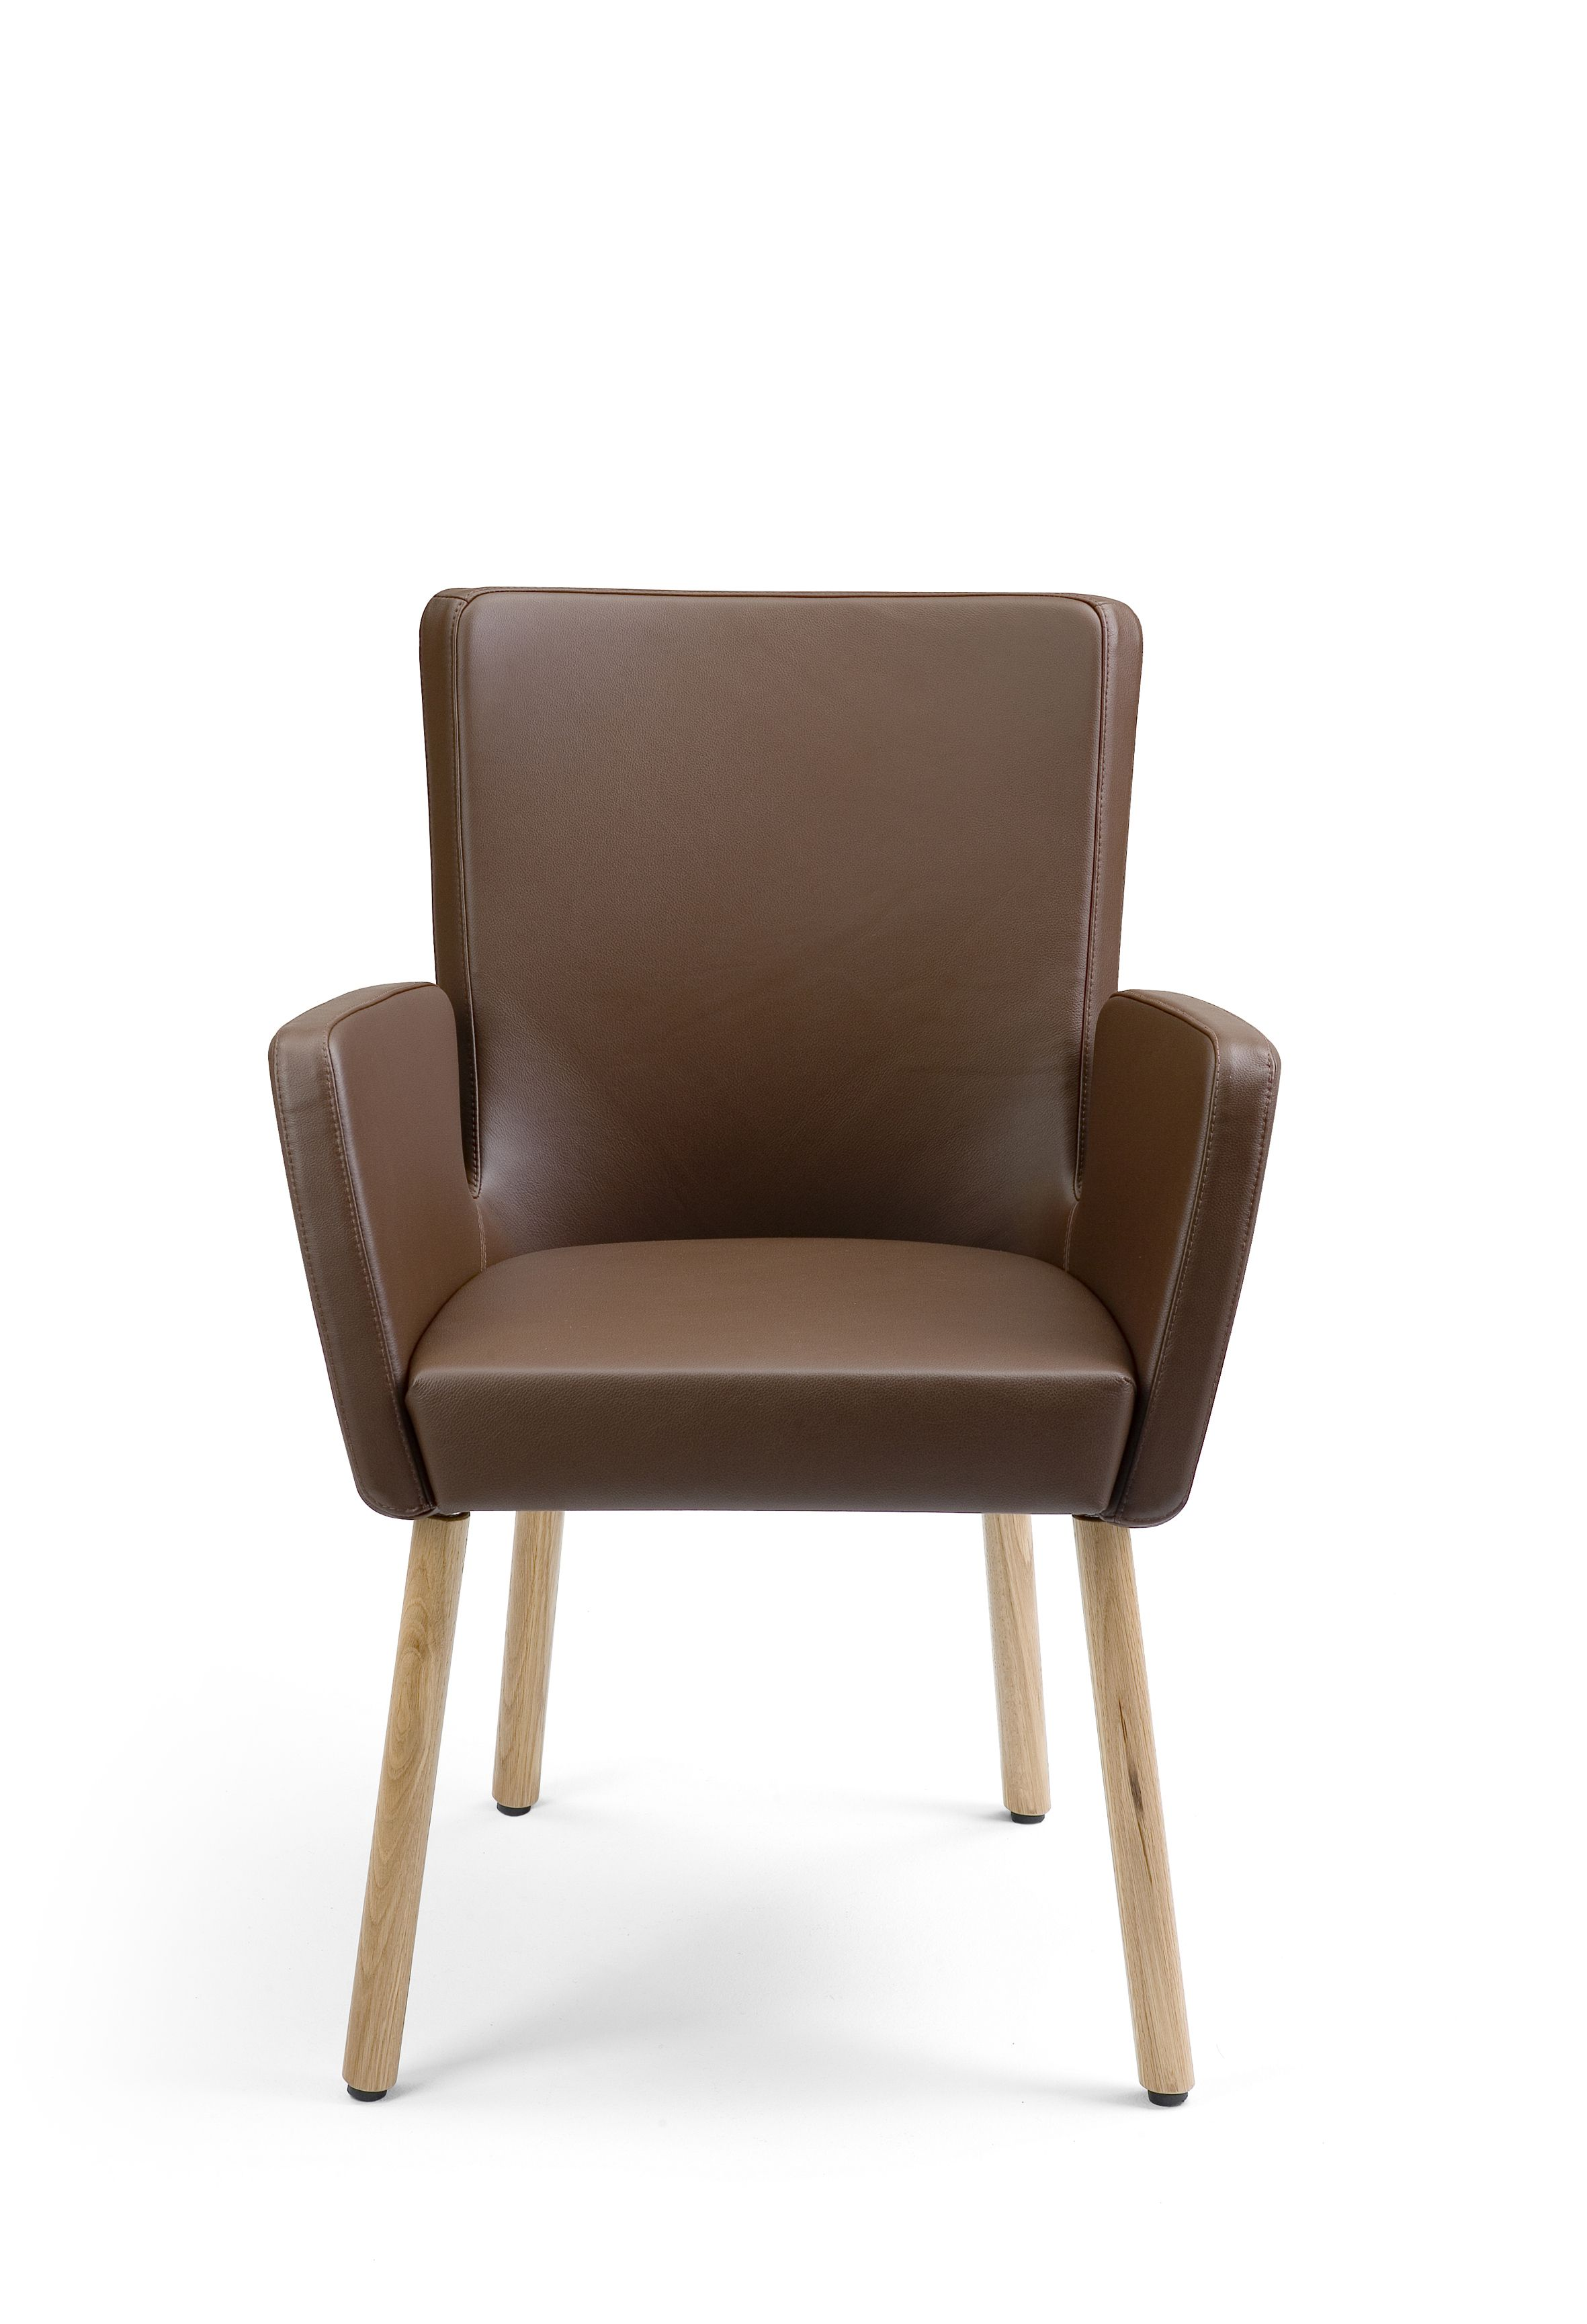 #LandeMila #chair #stoel #design #WoutSpeyers #SPEYERS